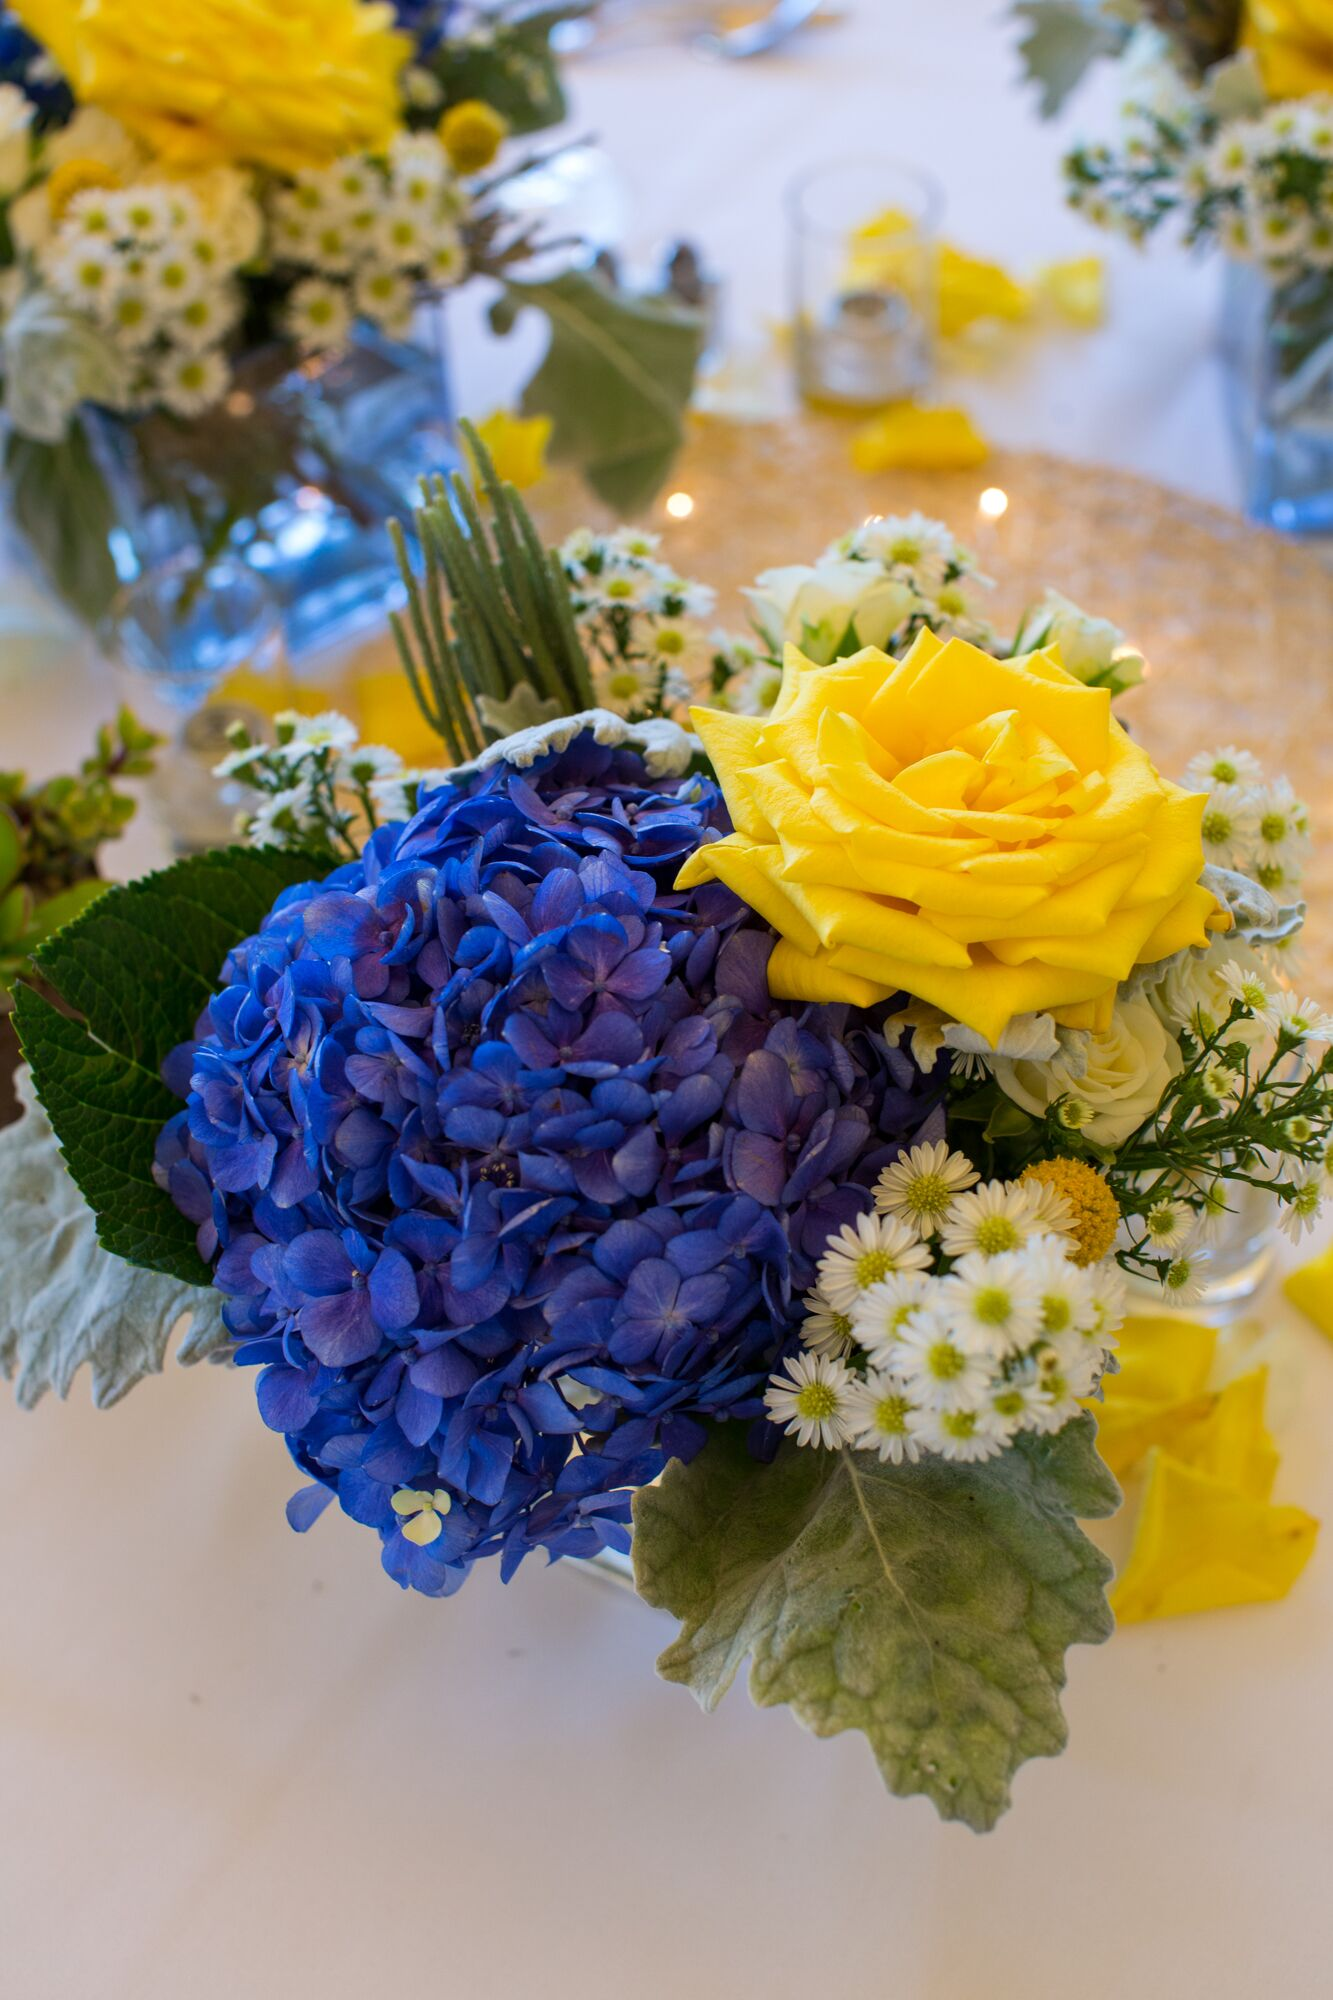 Yellow Rose And Blue Hydrangea Centerpiece With White Aster